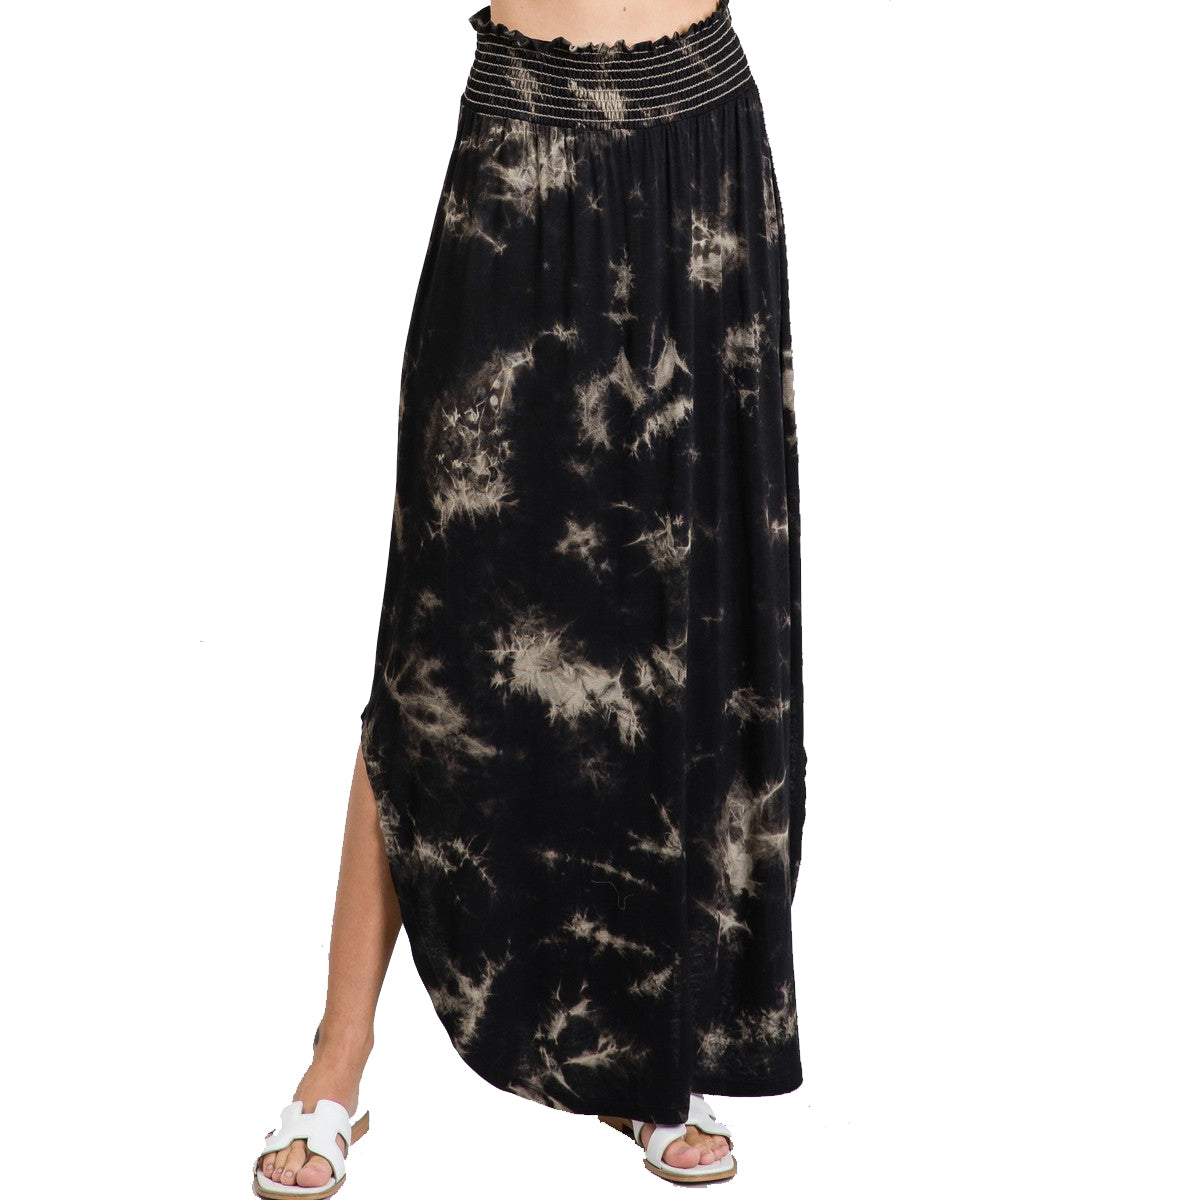 Jodifl Women's Tie-Dye Smocked Waist Maxi Skirt - Black